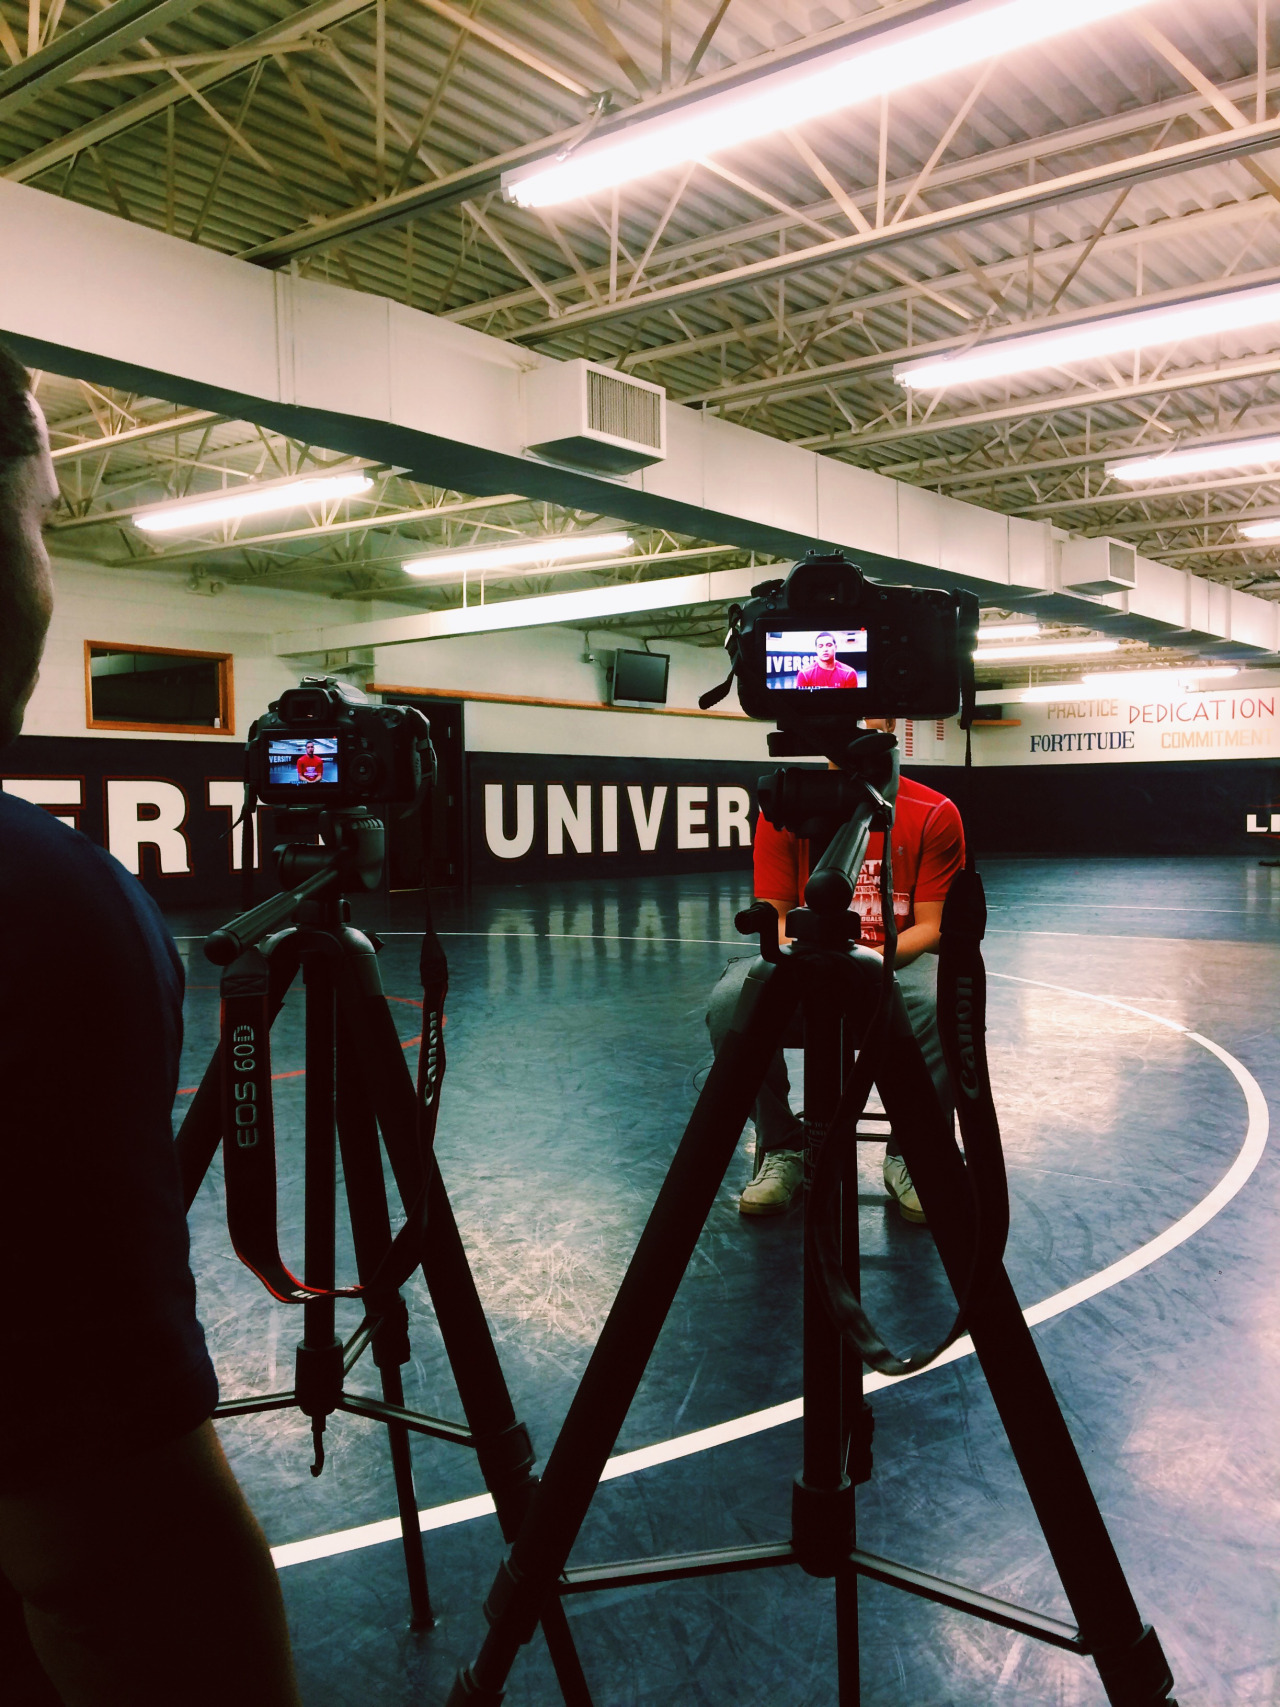 More interviews! This time, it's wrestling's turn in front of the camera. Always fun learning new things — a different sport from my usual, and continuing to get more familiar with video. After hearing the passion of these athletes and coaches, I'm super pumped to tell their story. (I also have decided that I would like all the flooring in my apartment to be squishy wrestling mat material, but that's, you know, a less pertinent/intellectual takeaway.)